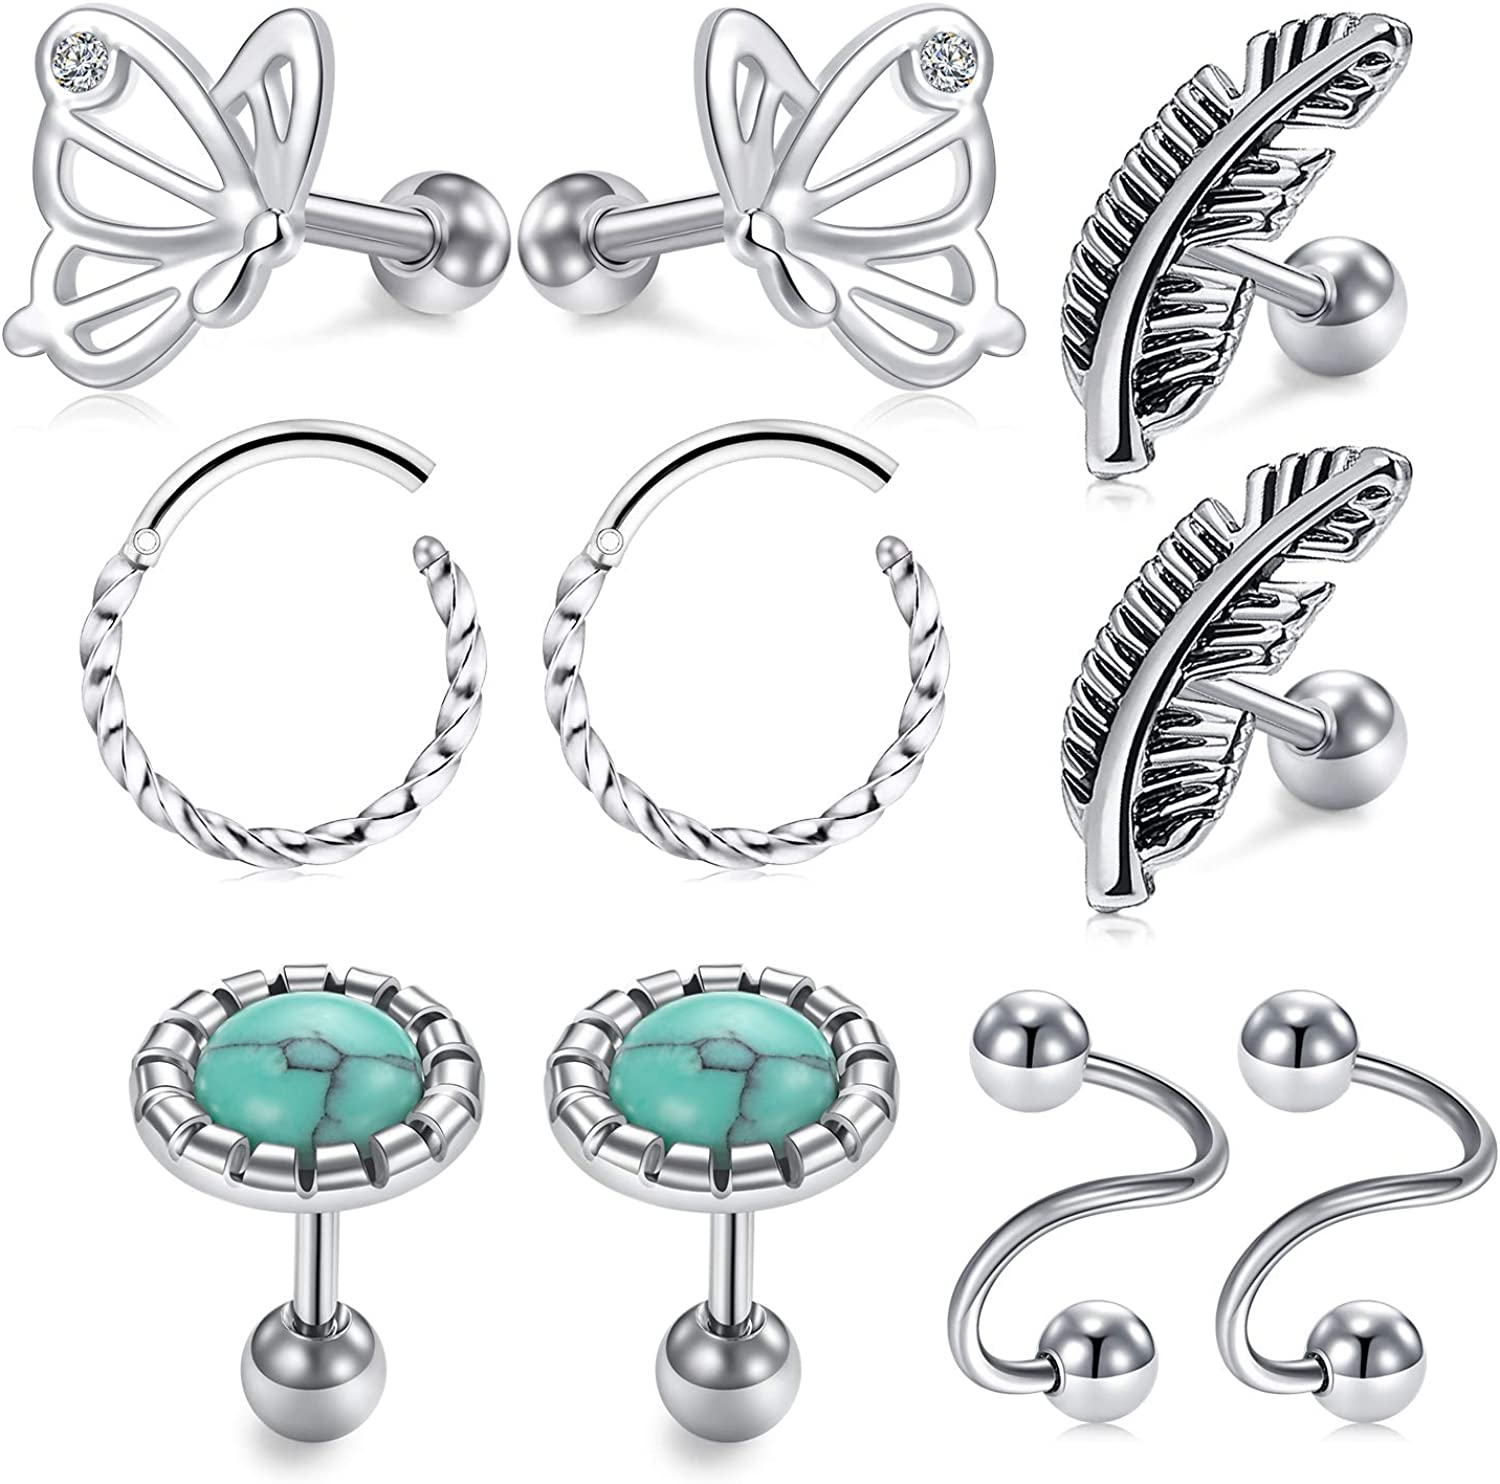 LAURITAMI 16g Tragus Helix Earrings E Earring Ear Stud Direct 40% OFF Cheap Sale store Cartilage